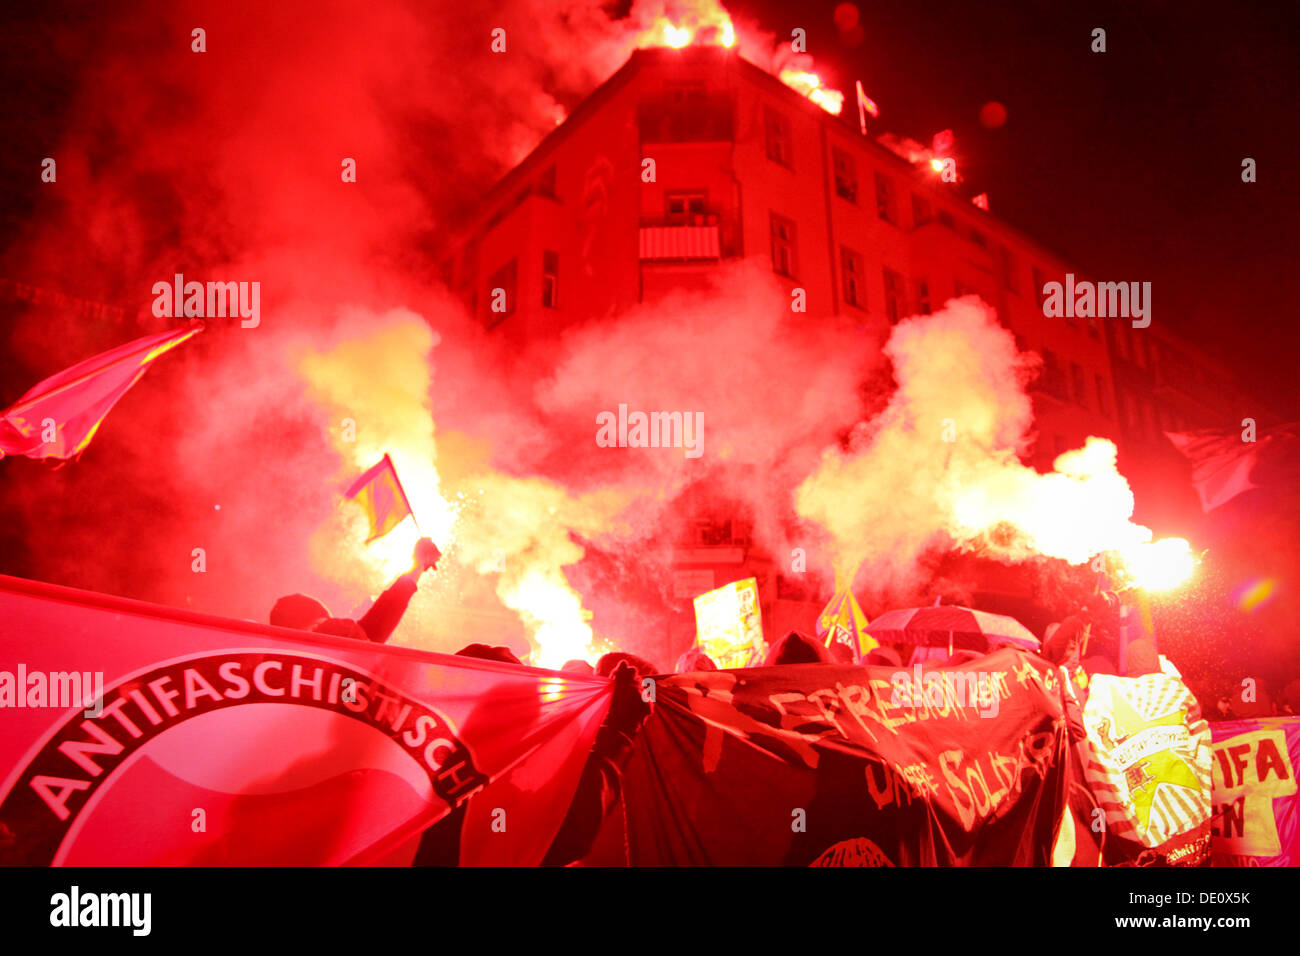 Bengal fireworks, radical left-wing protest in memory of squatter Silvio Meier who was murdered by neo-Nazis in 1992 - Stock Image